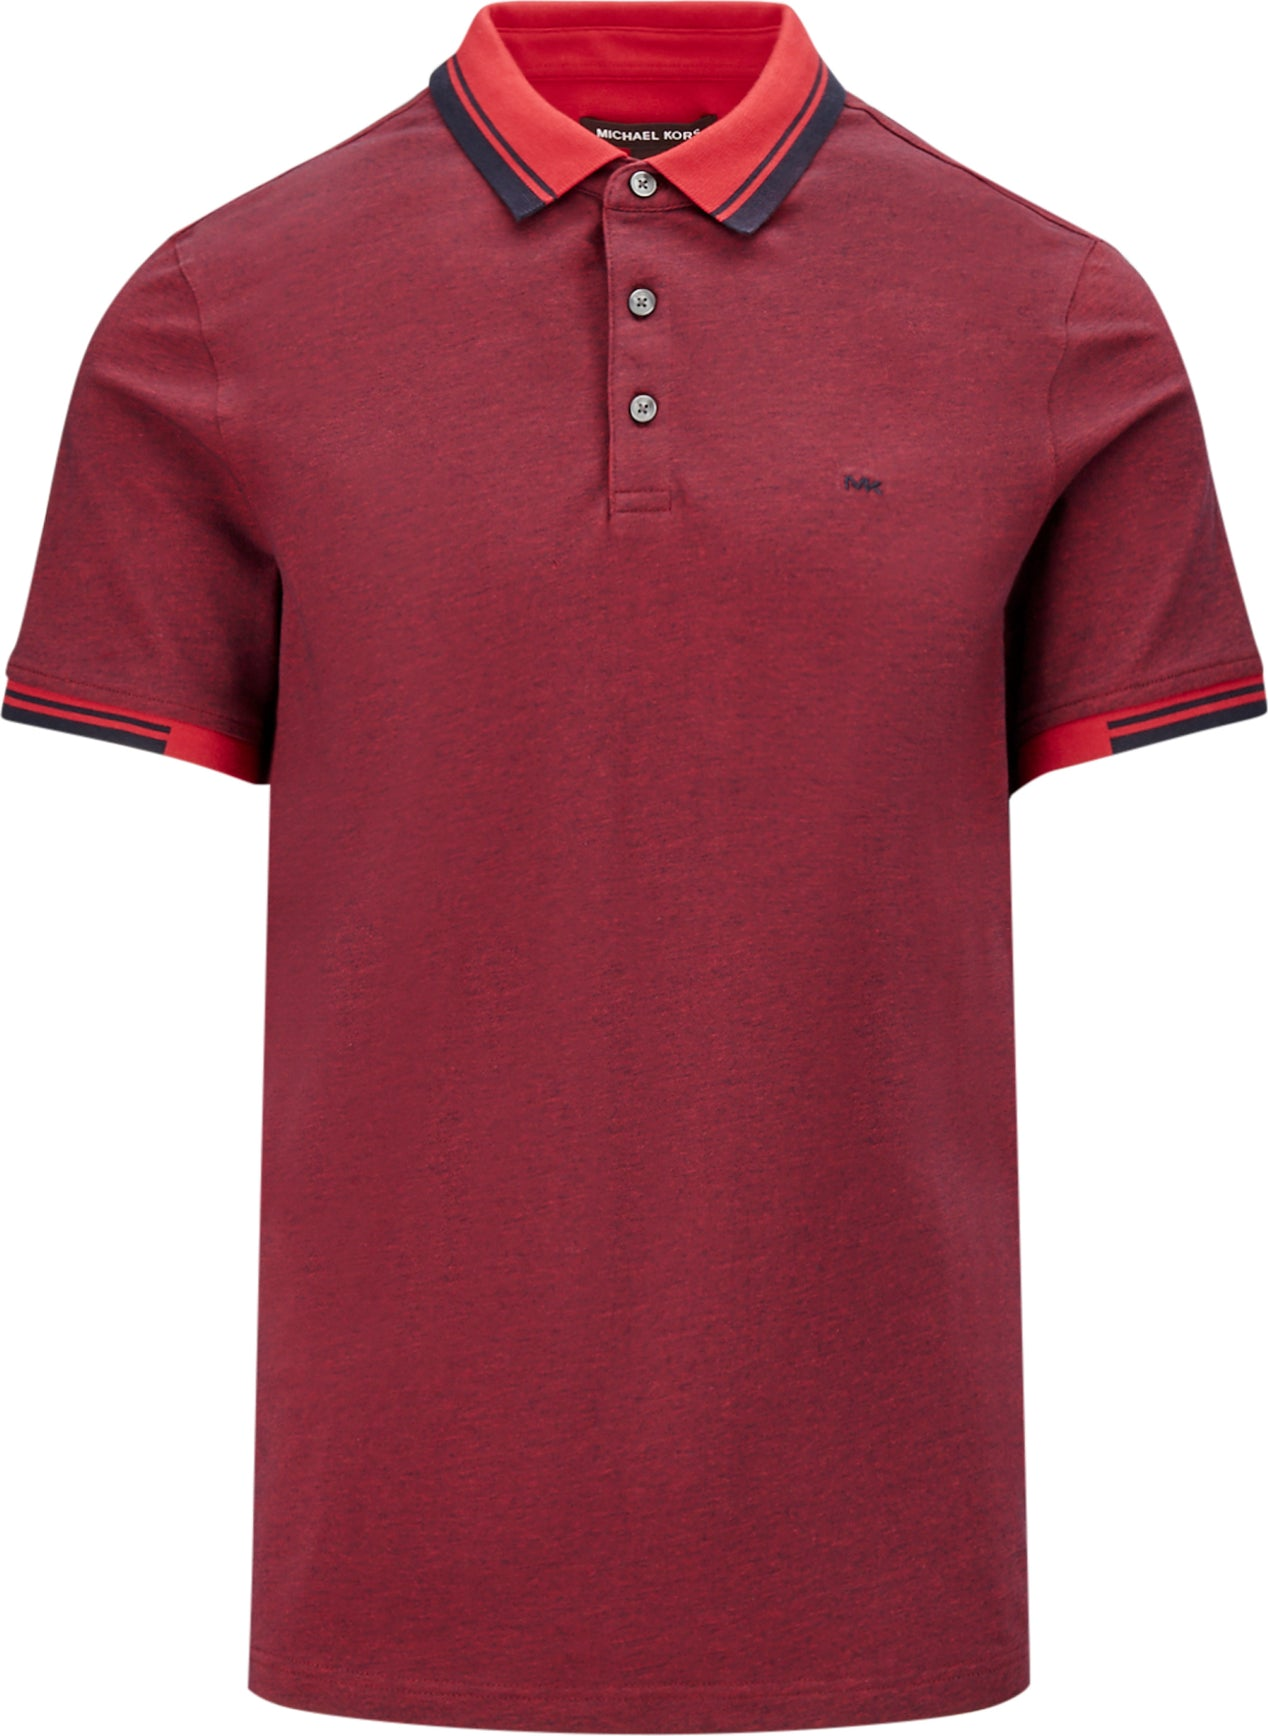 eeff183f4856f8 ... Michael Kors Greenwich Stretch-Cotton Polo Shirt - Men's Winter Red ...